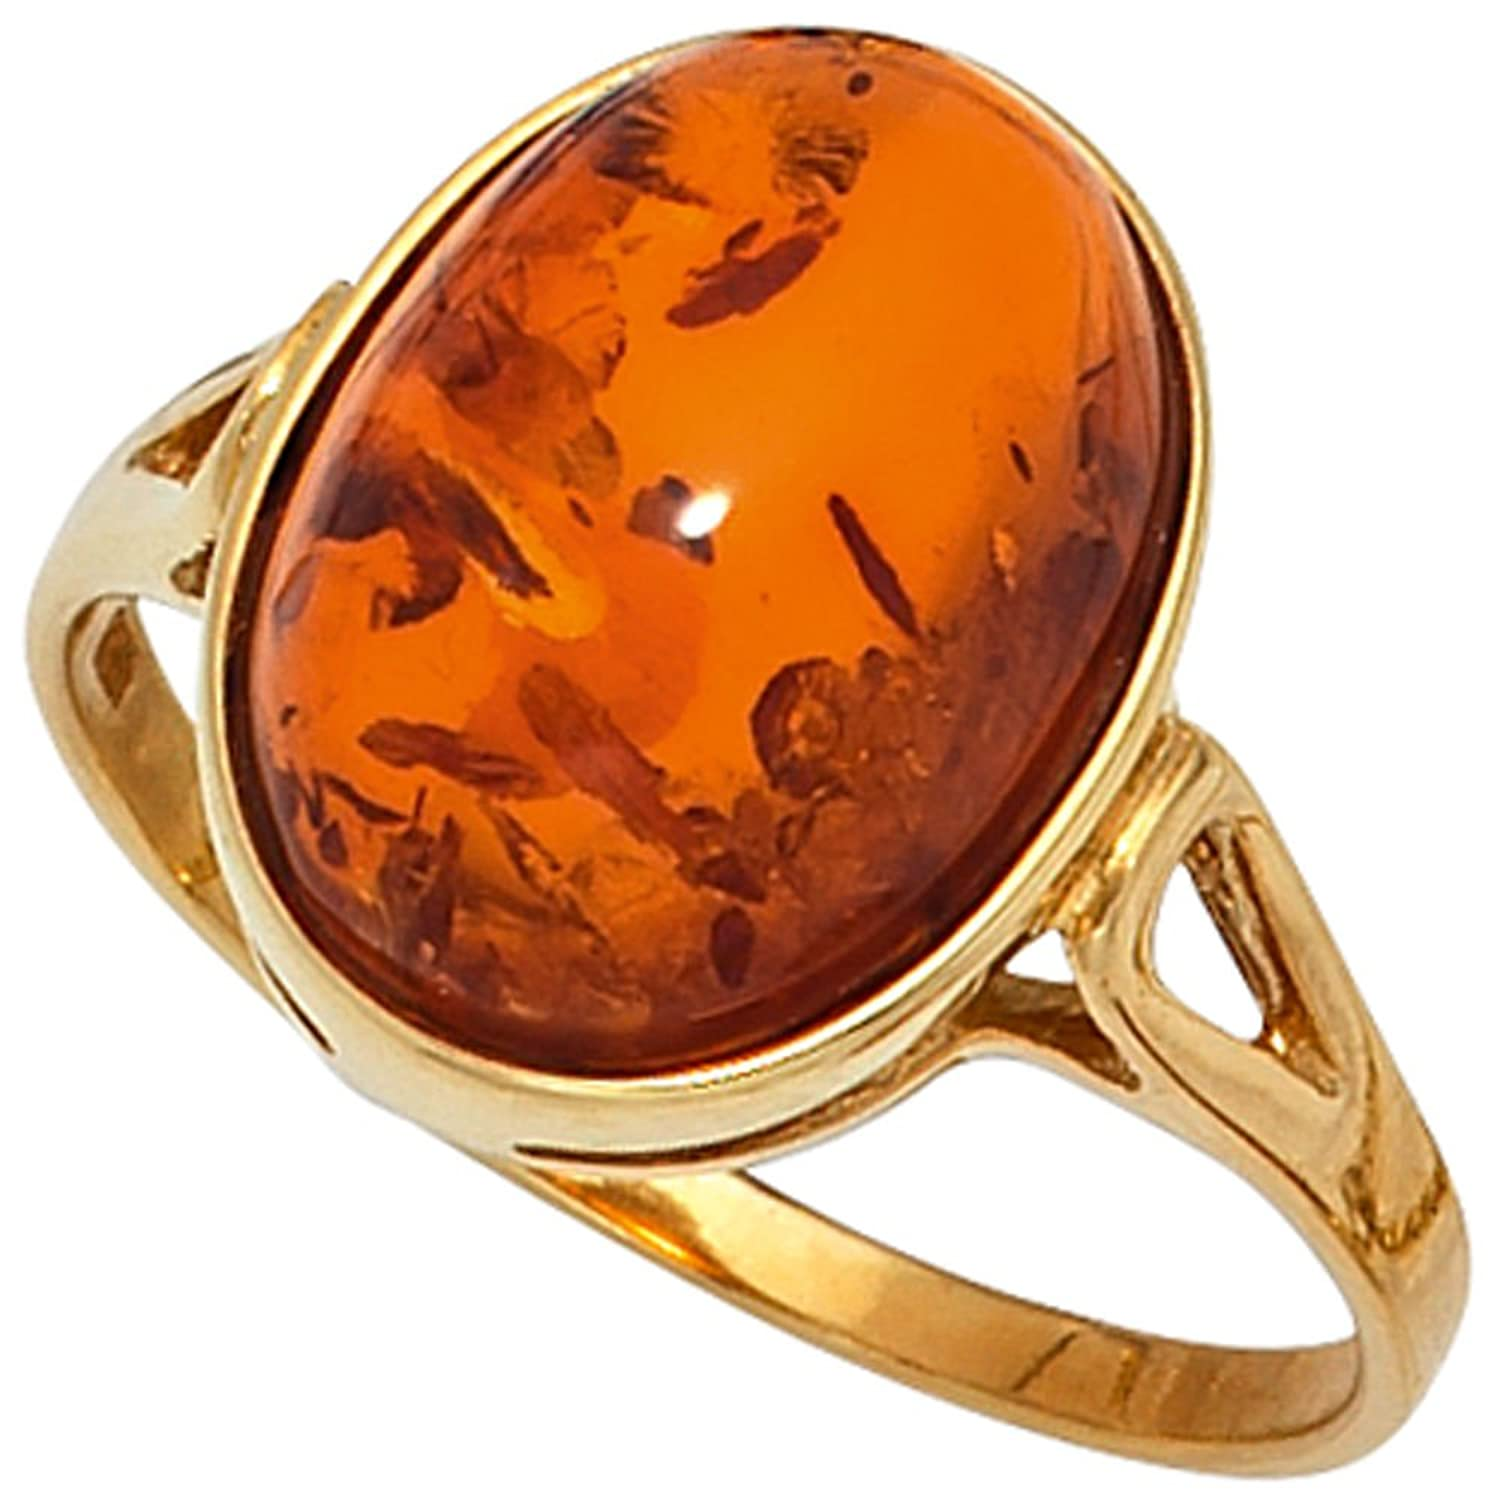 Damen Ring 375 Gold Gelbgold 1 Bernstein orange Bernsteinring Goldring günstig